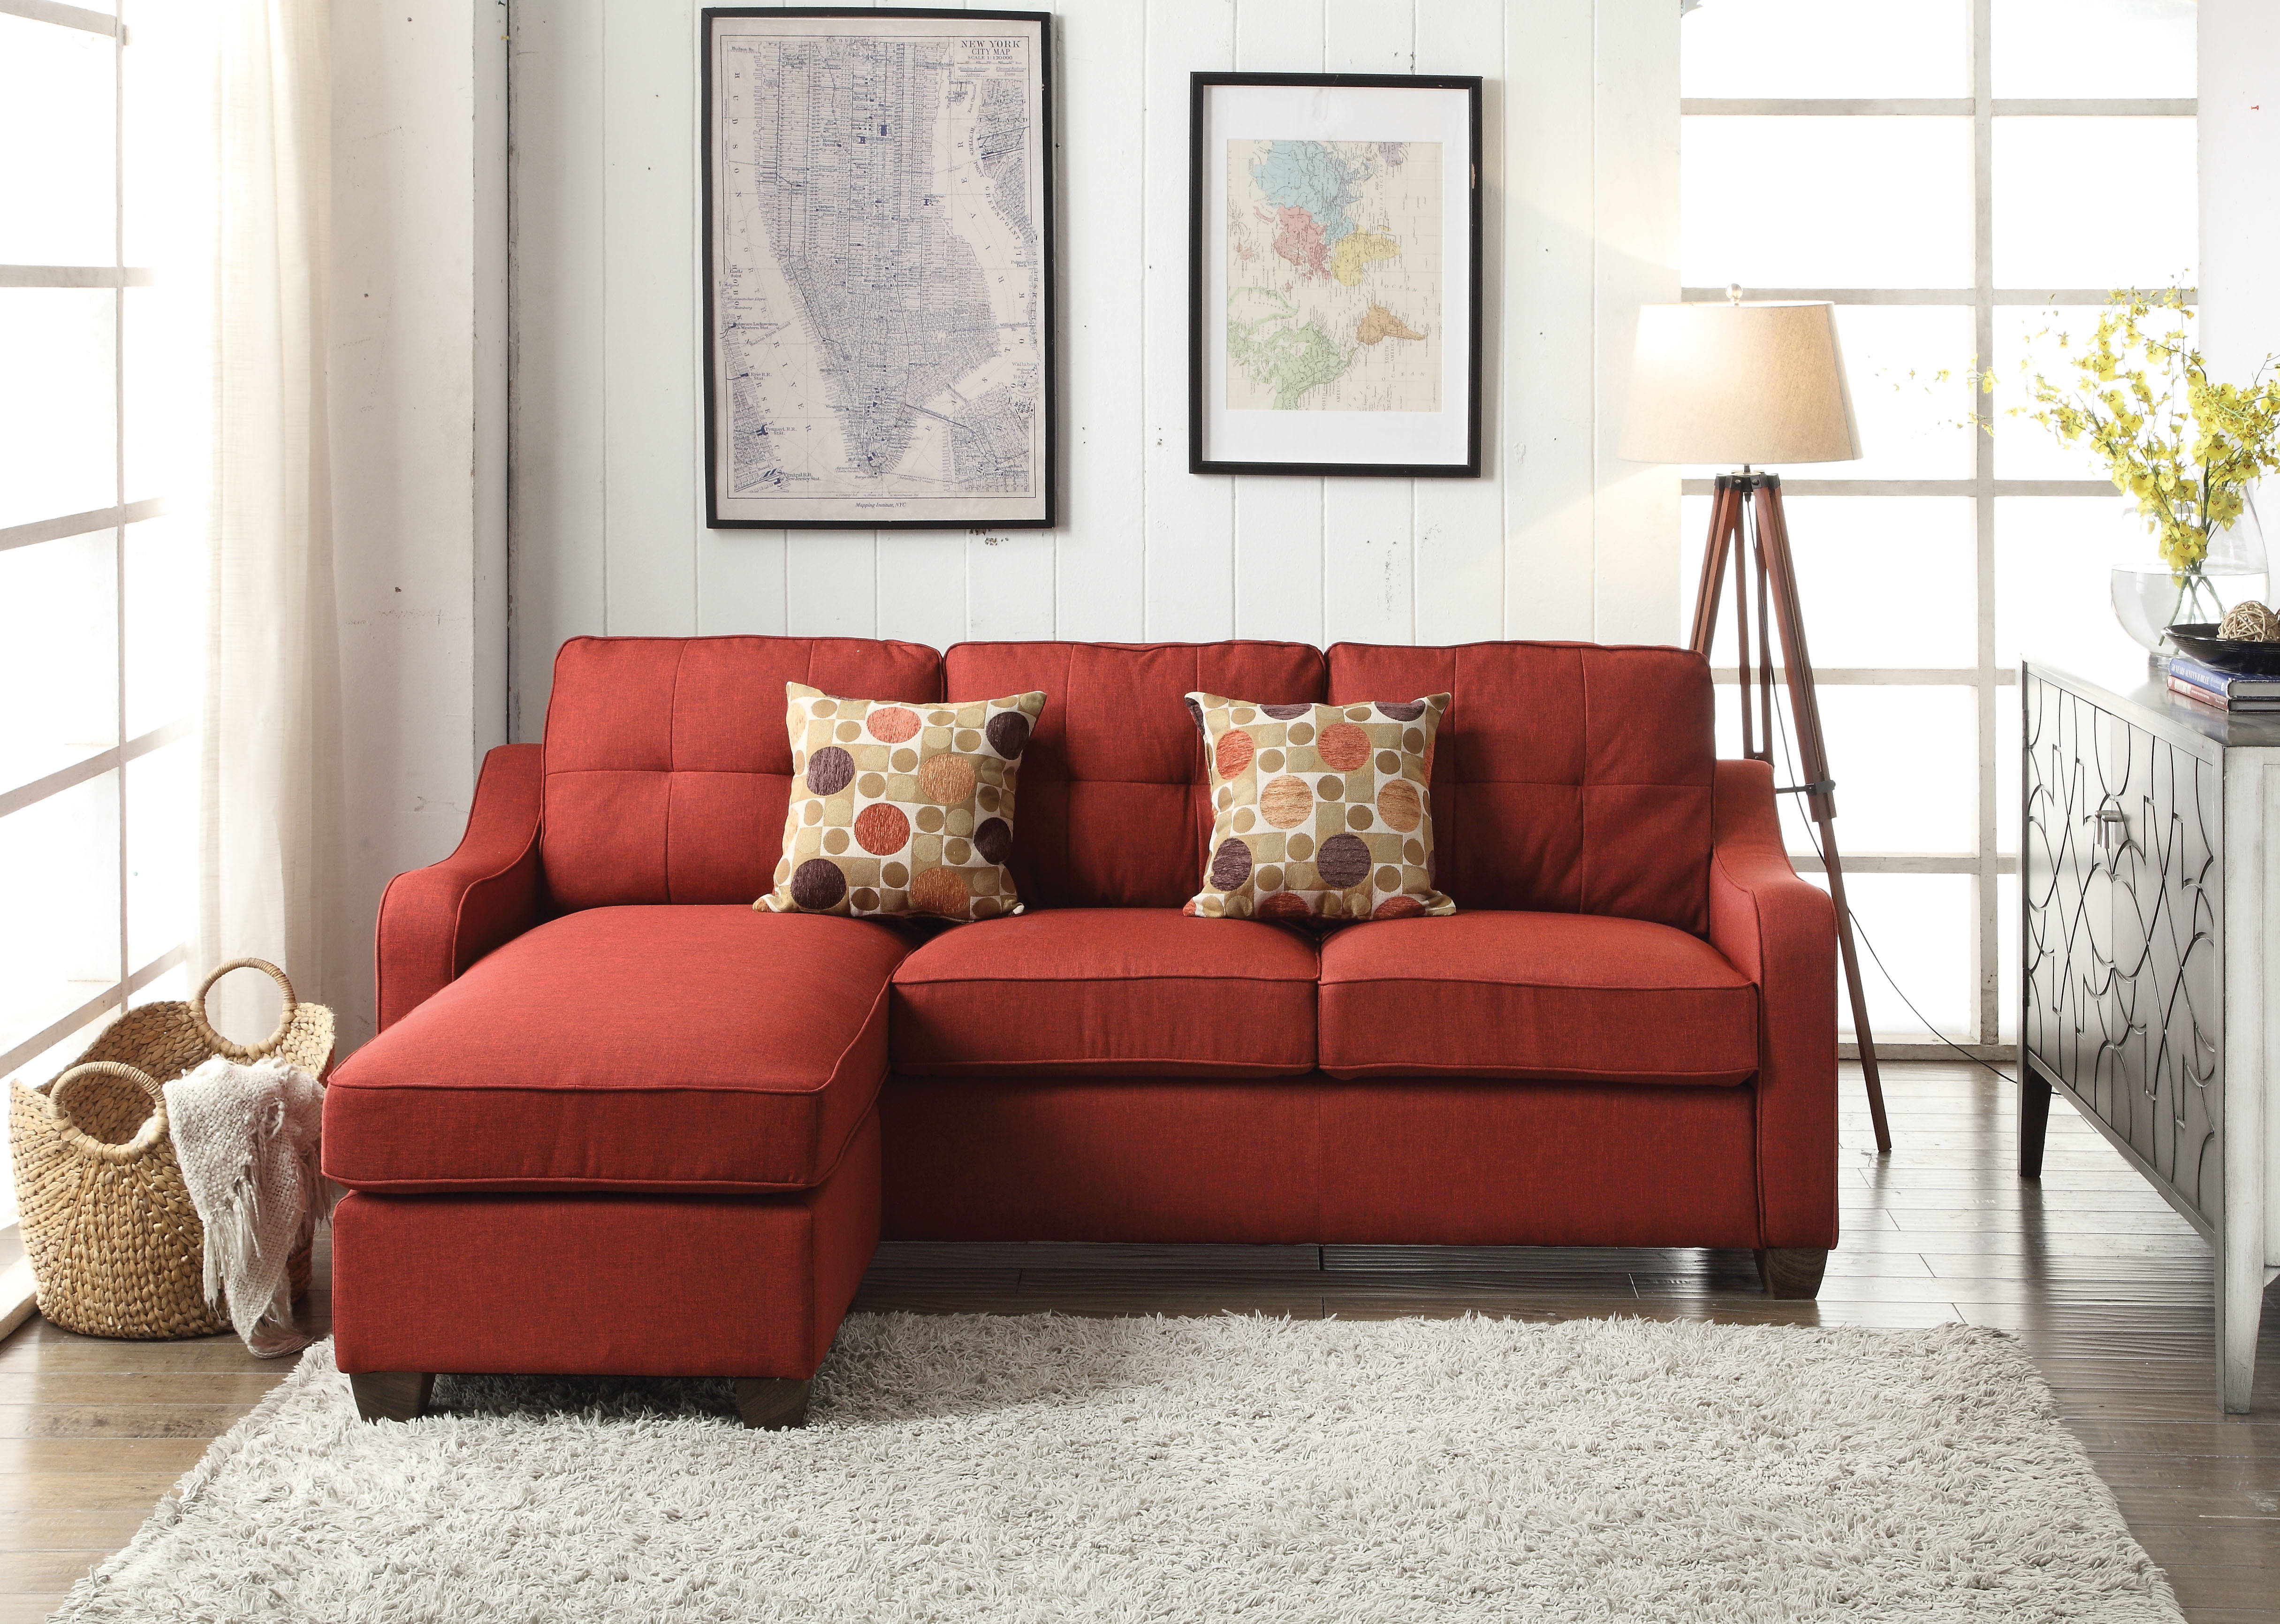 Acme Furniture Cleavon II Red Sectional Sofa with Two ...